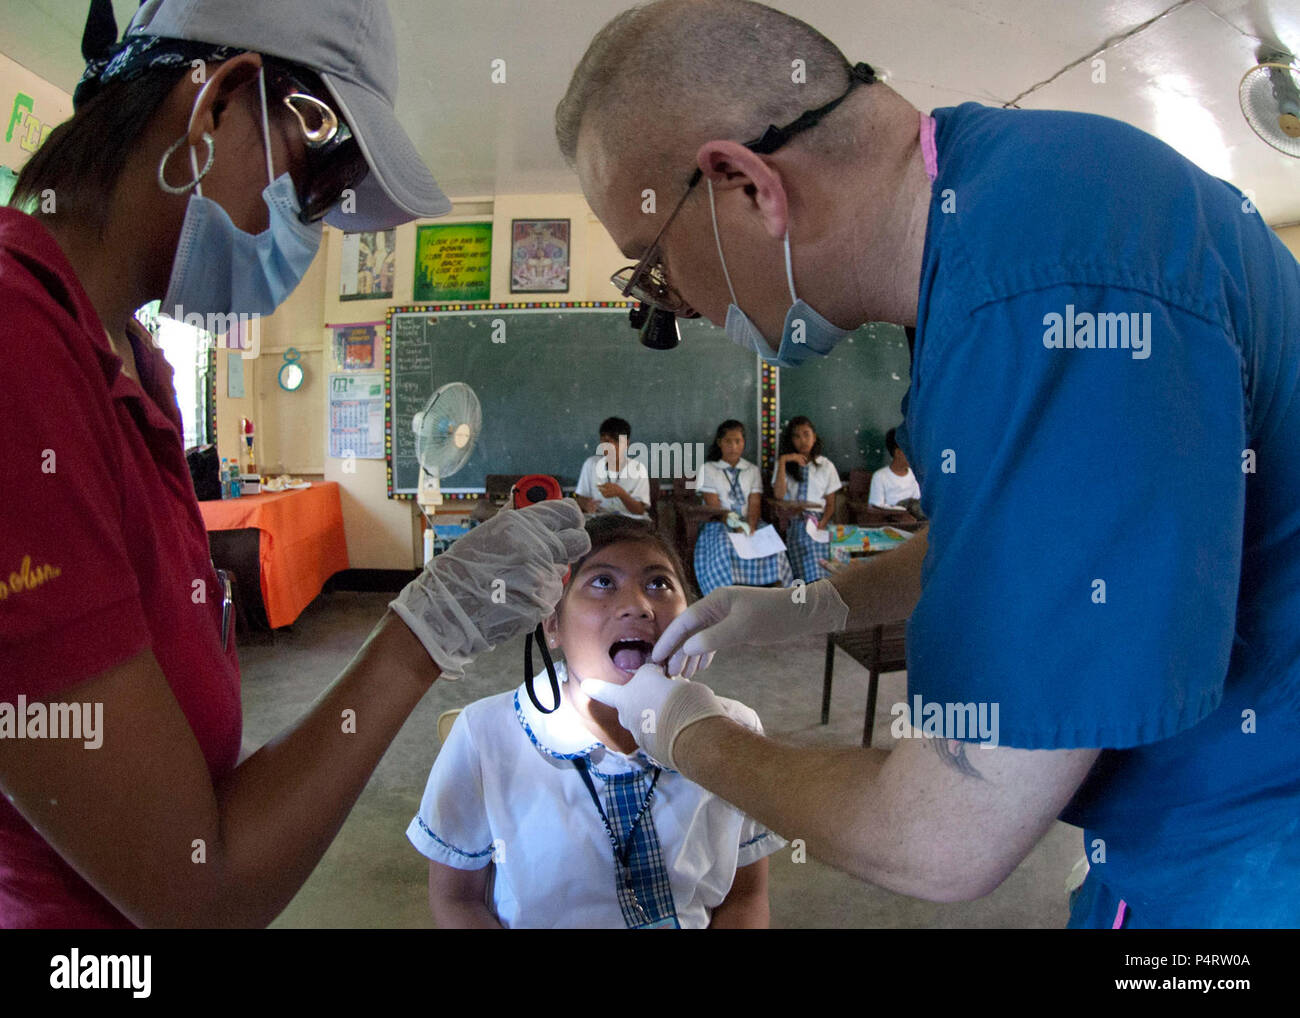 U.S. Navy Cmdr. Bradley J. Smith, right, a dentist, examines a patient before extracting a tooth during a dental and civic action project at San Miguel National High School in San Miguel, Philippines. Oct. 6, 2010. Smith is deployed for Cooperation Afloat Readiness and Training, which is a bilateral exercise held annually in Southeast Asia to strengthen relationships and promote maritime security. (DoD - Stock Image